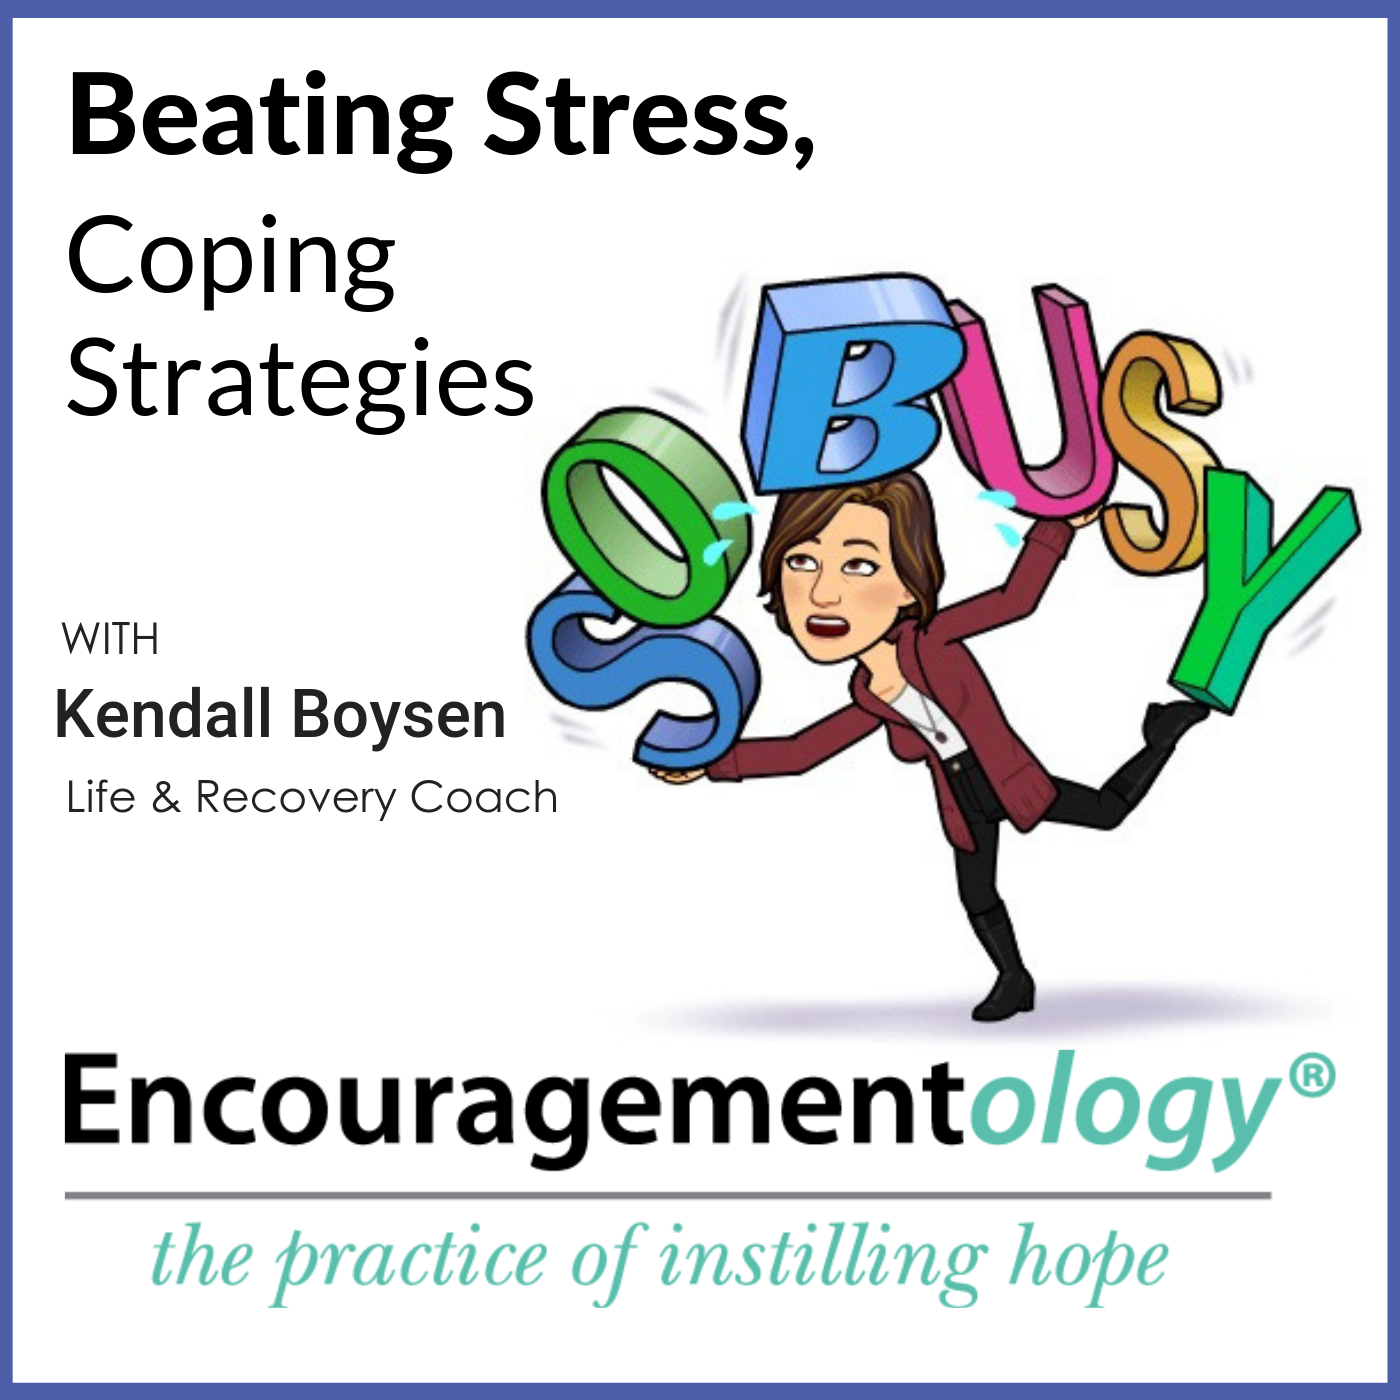 Beating Stress, Coping Strategies